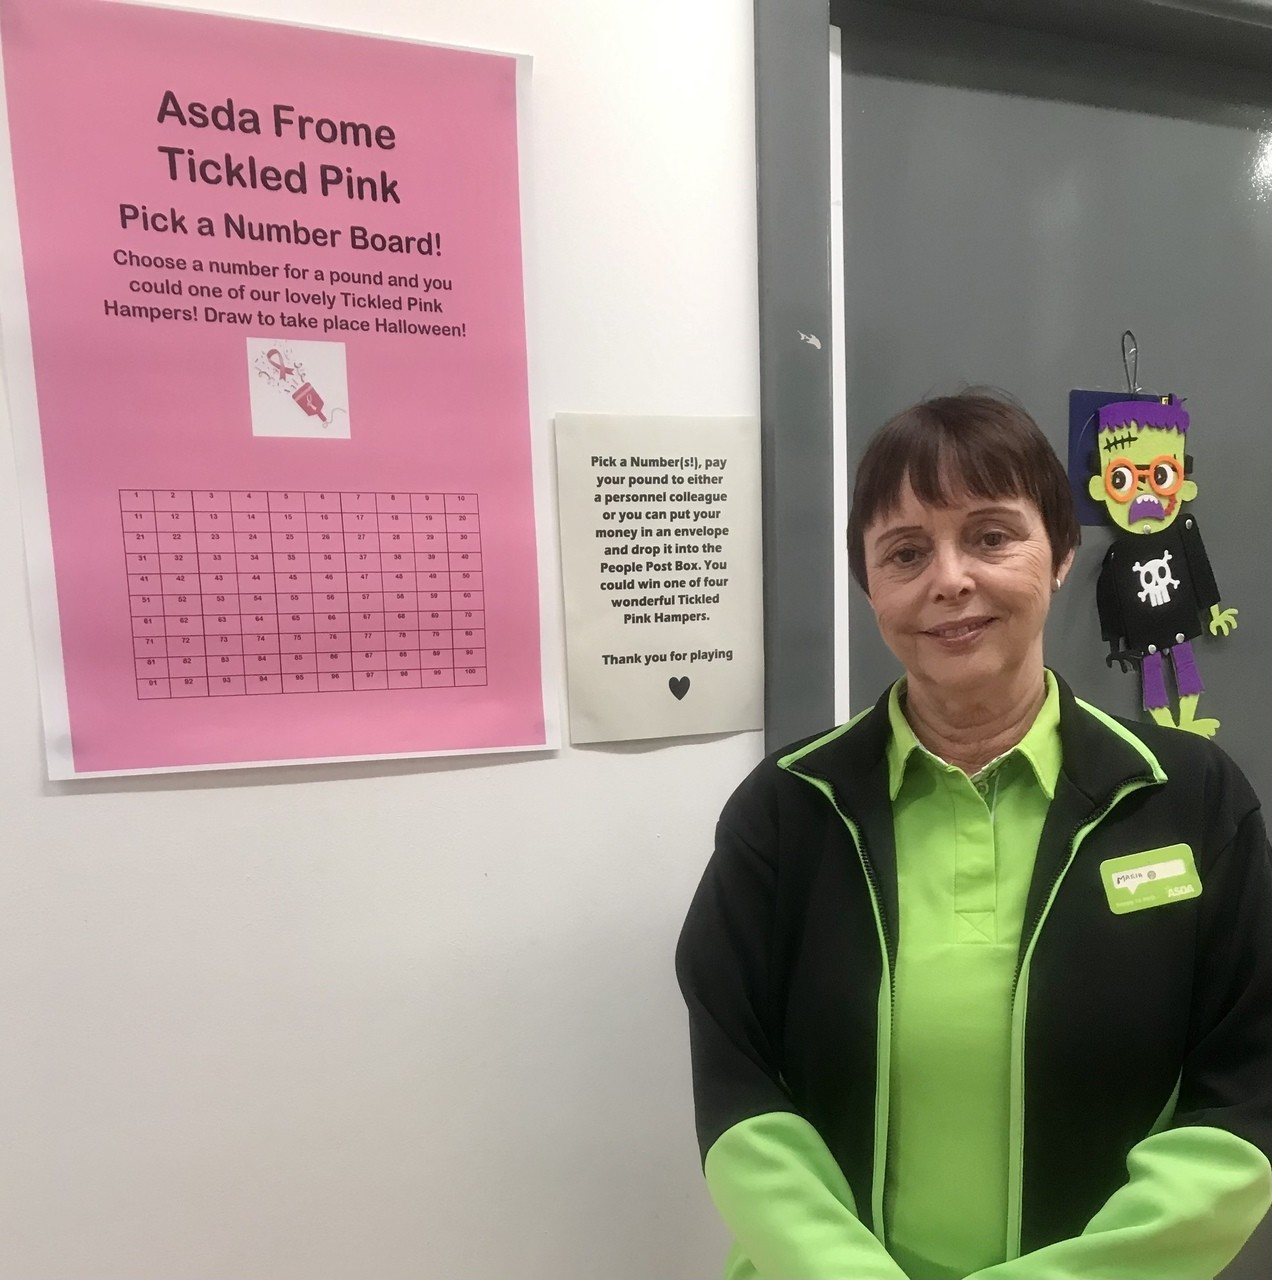 Pick a Number for Tickled Pink | Asda Frome